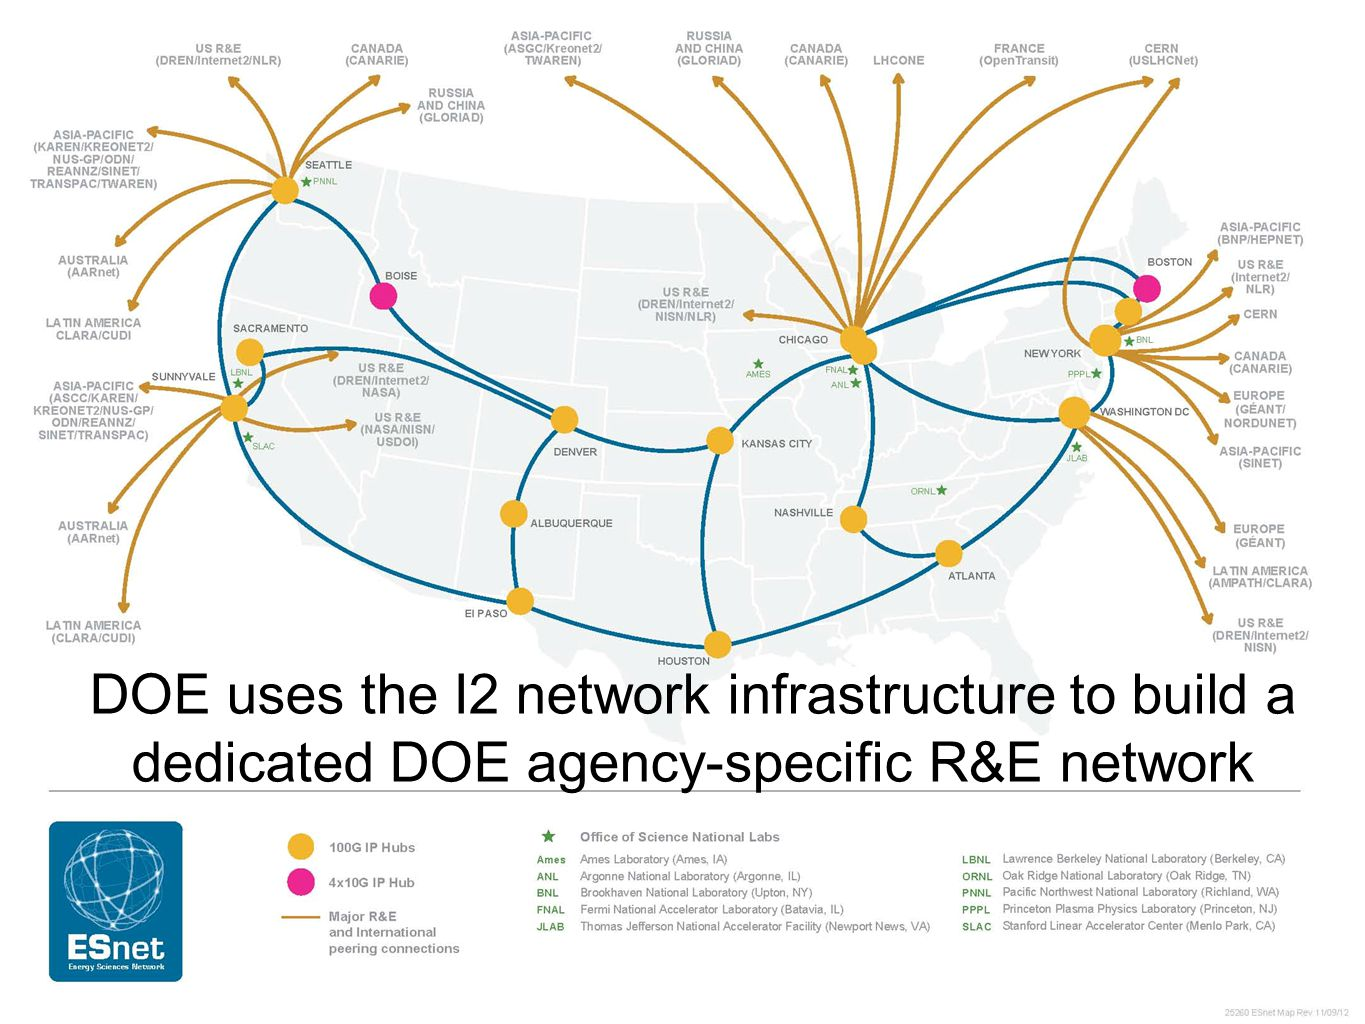 DOE uses the I2 network infrastructure to build a dedicated DOE agency-specific R&E network